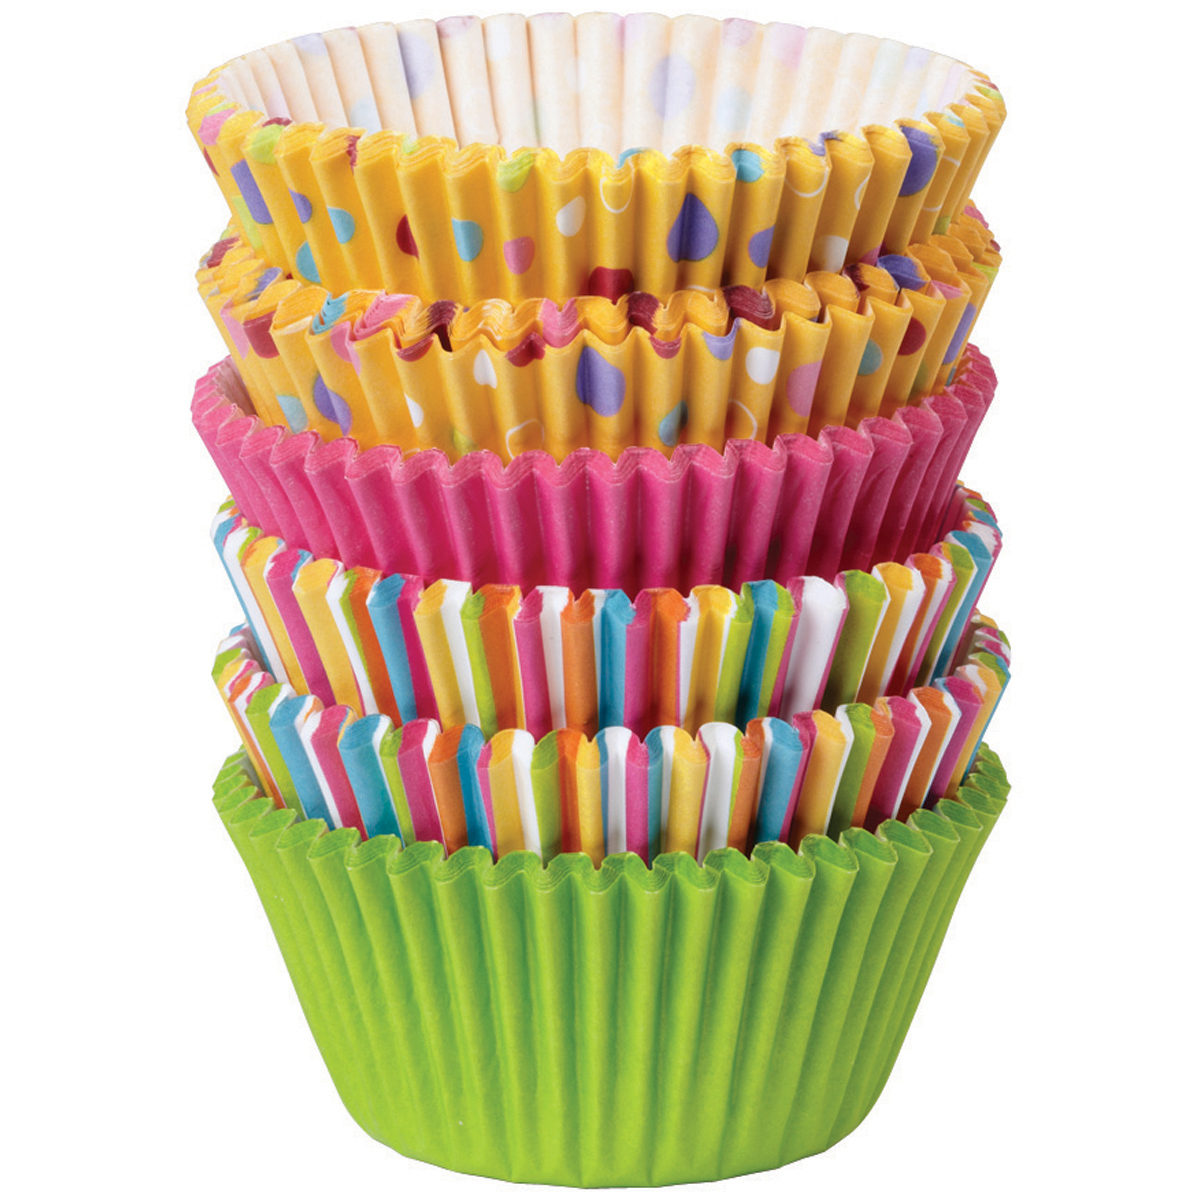 Wilton Sweet Dots and Stripes standard Baking Cups 150ct